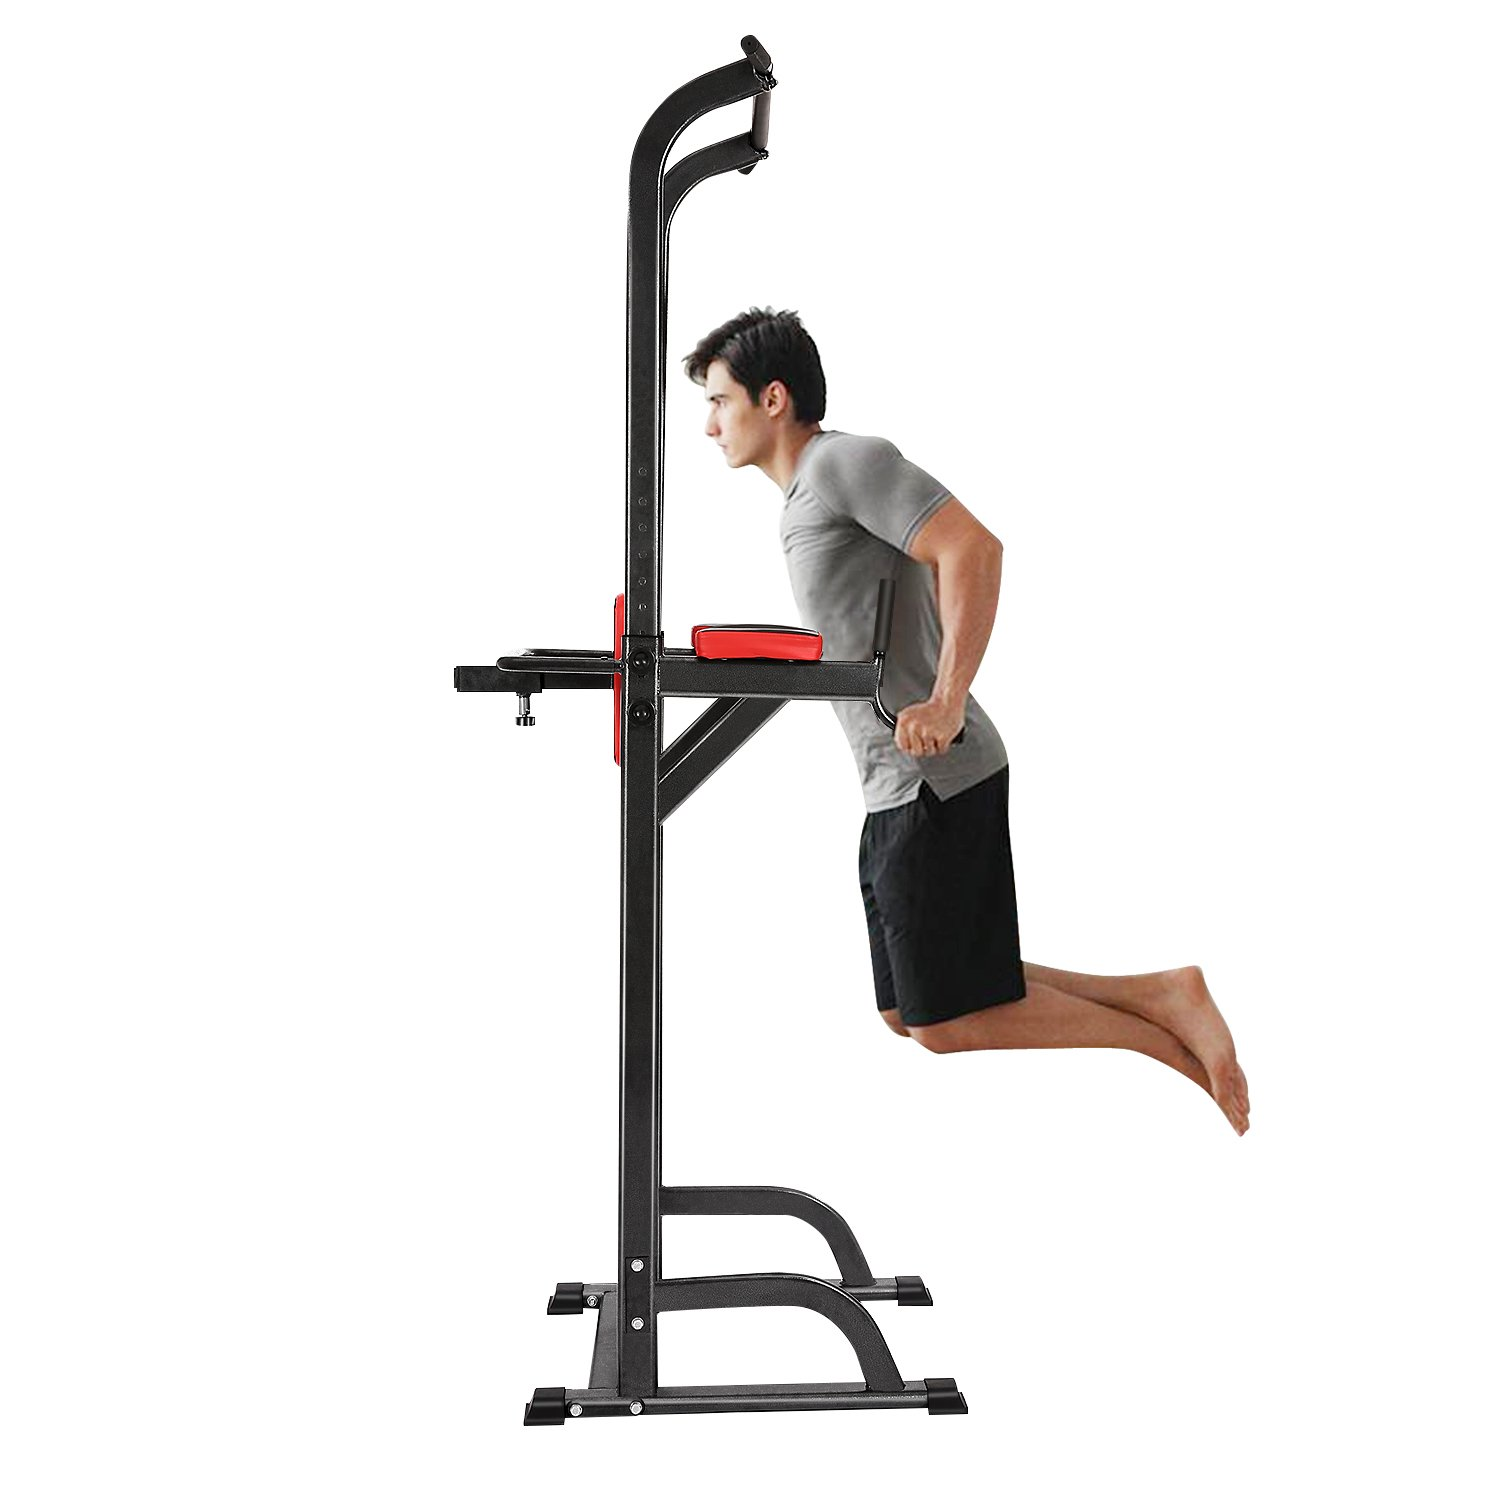 Oanon Adjustable Power Tower, Pull Up Chin Up Bar, Pull Up Station, Pull Up Tower for Home Gym by Oanon